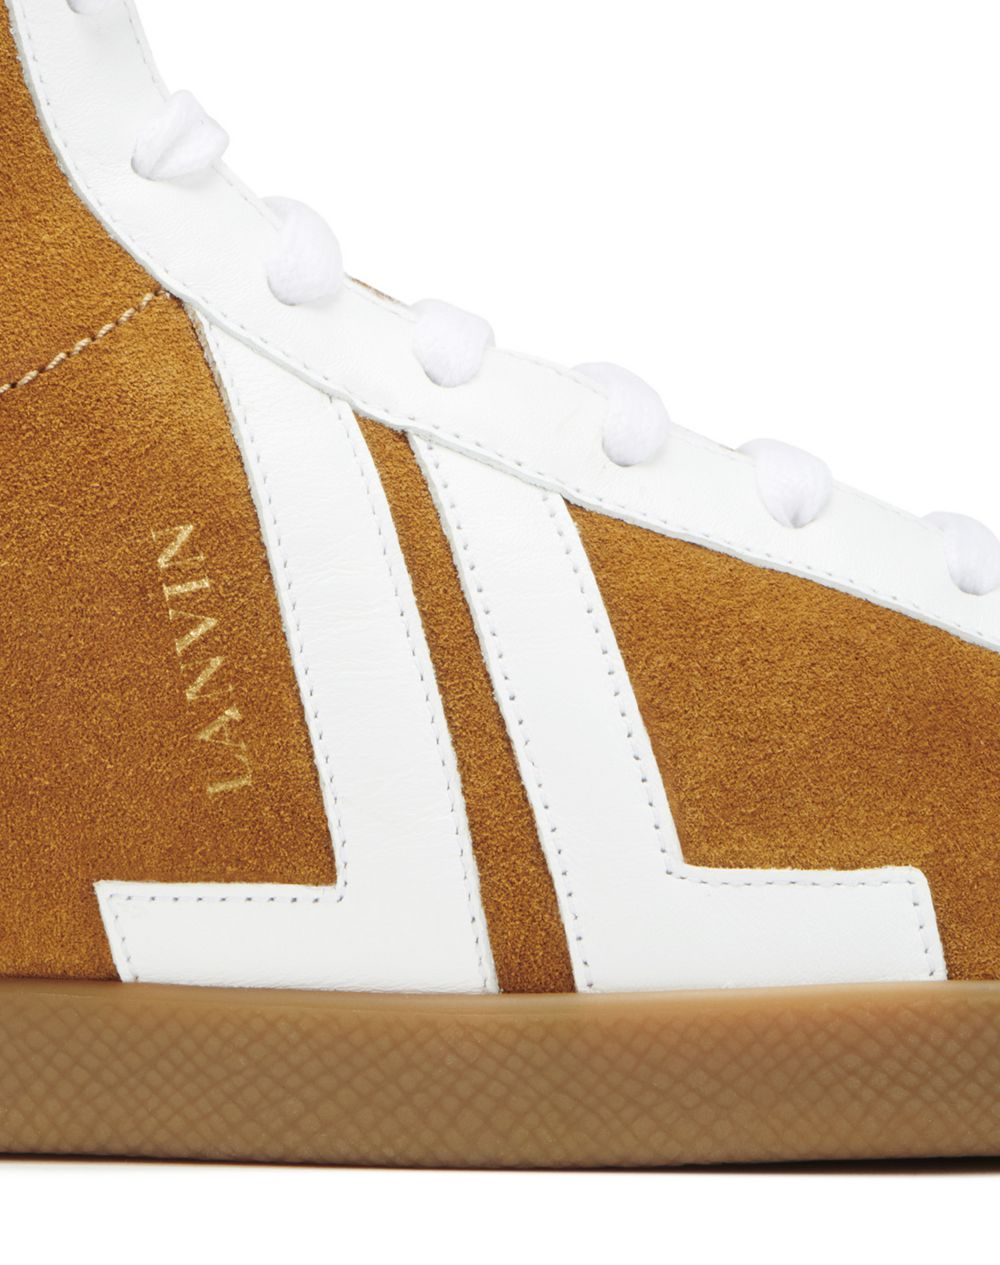 DUAL-MATERIAL JL HIGH-TOP SNEAKERS - Lanvin